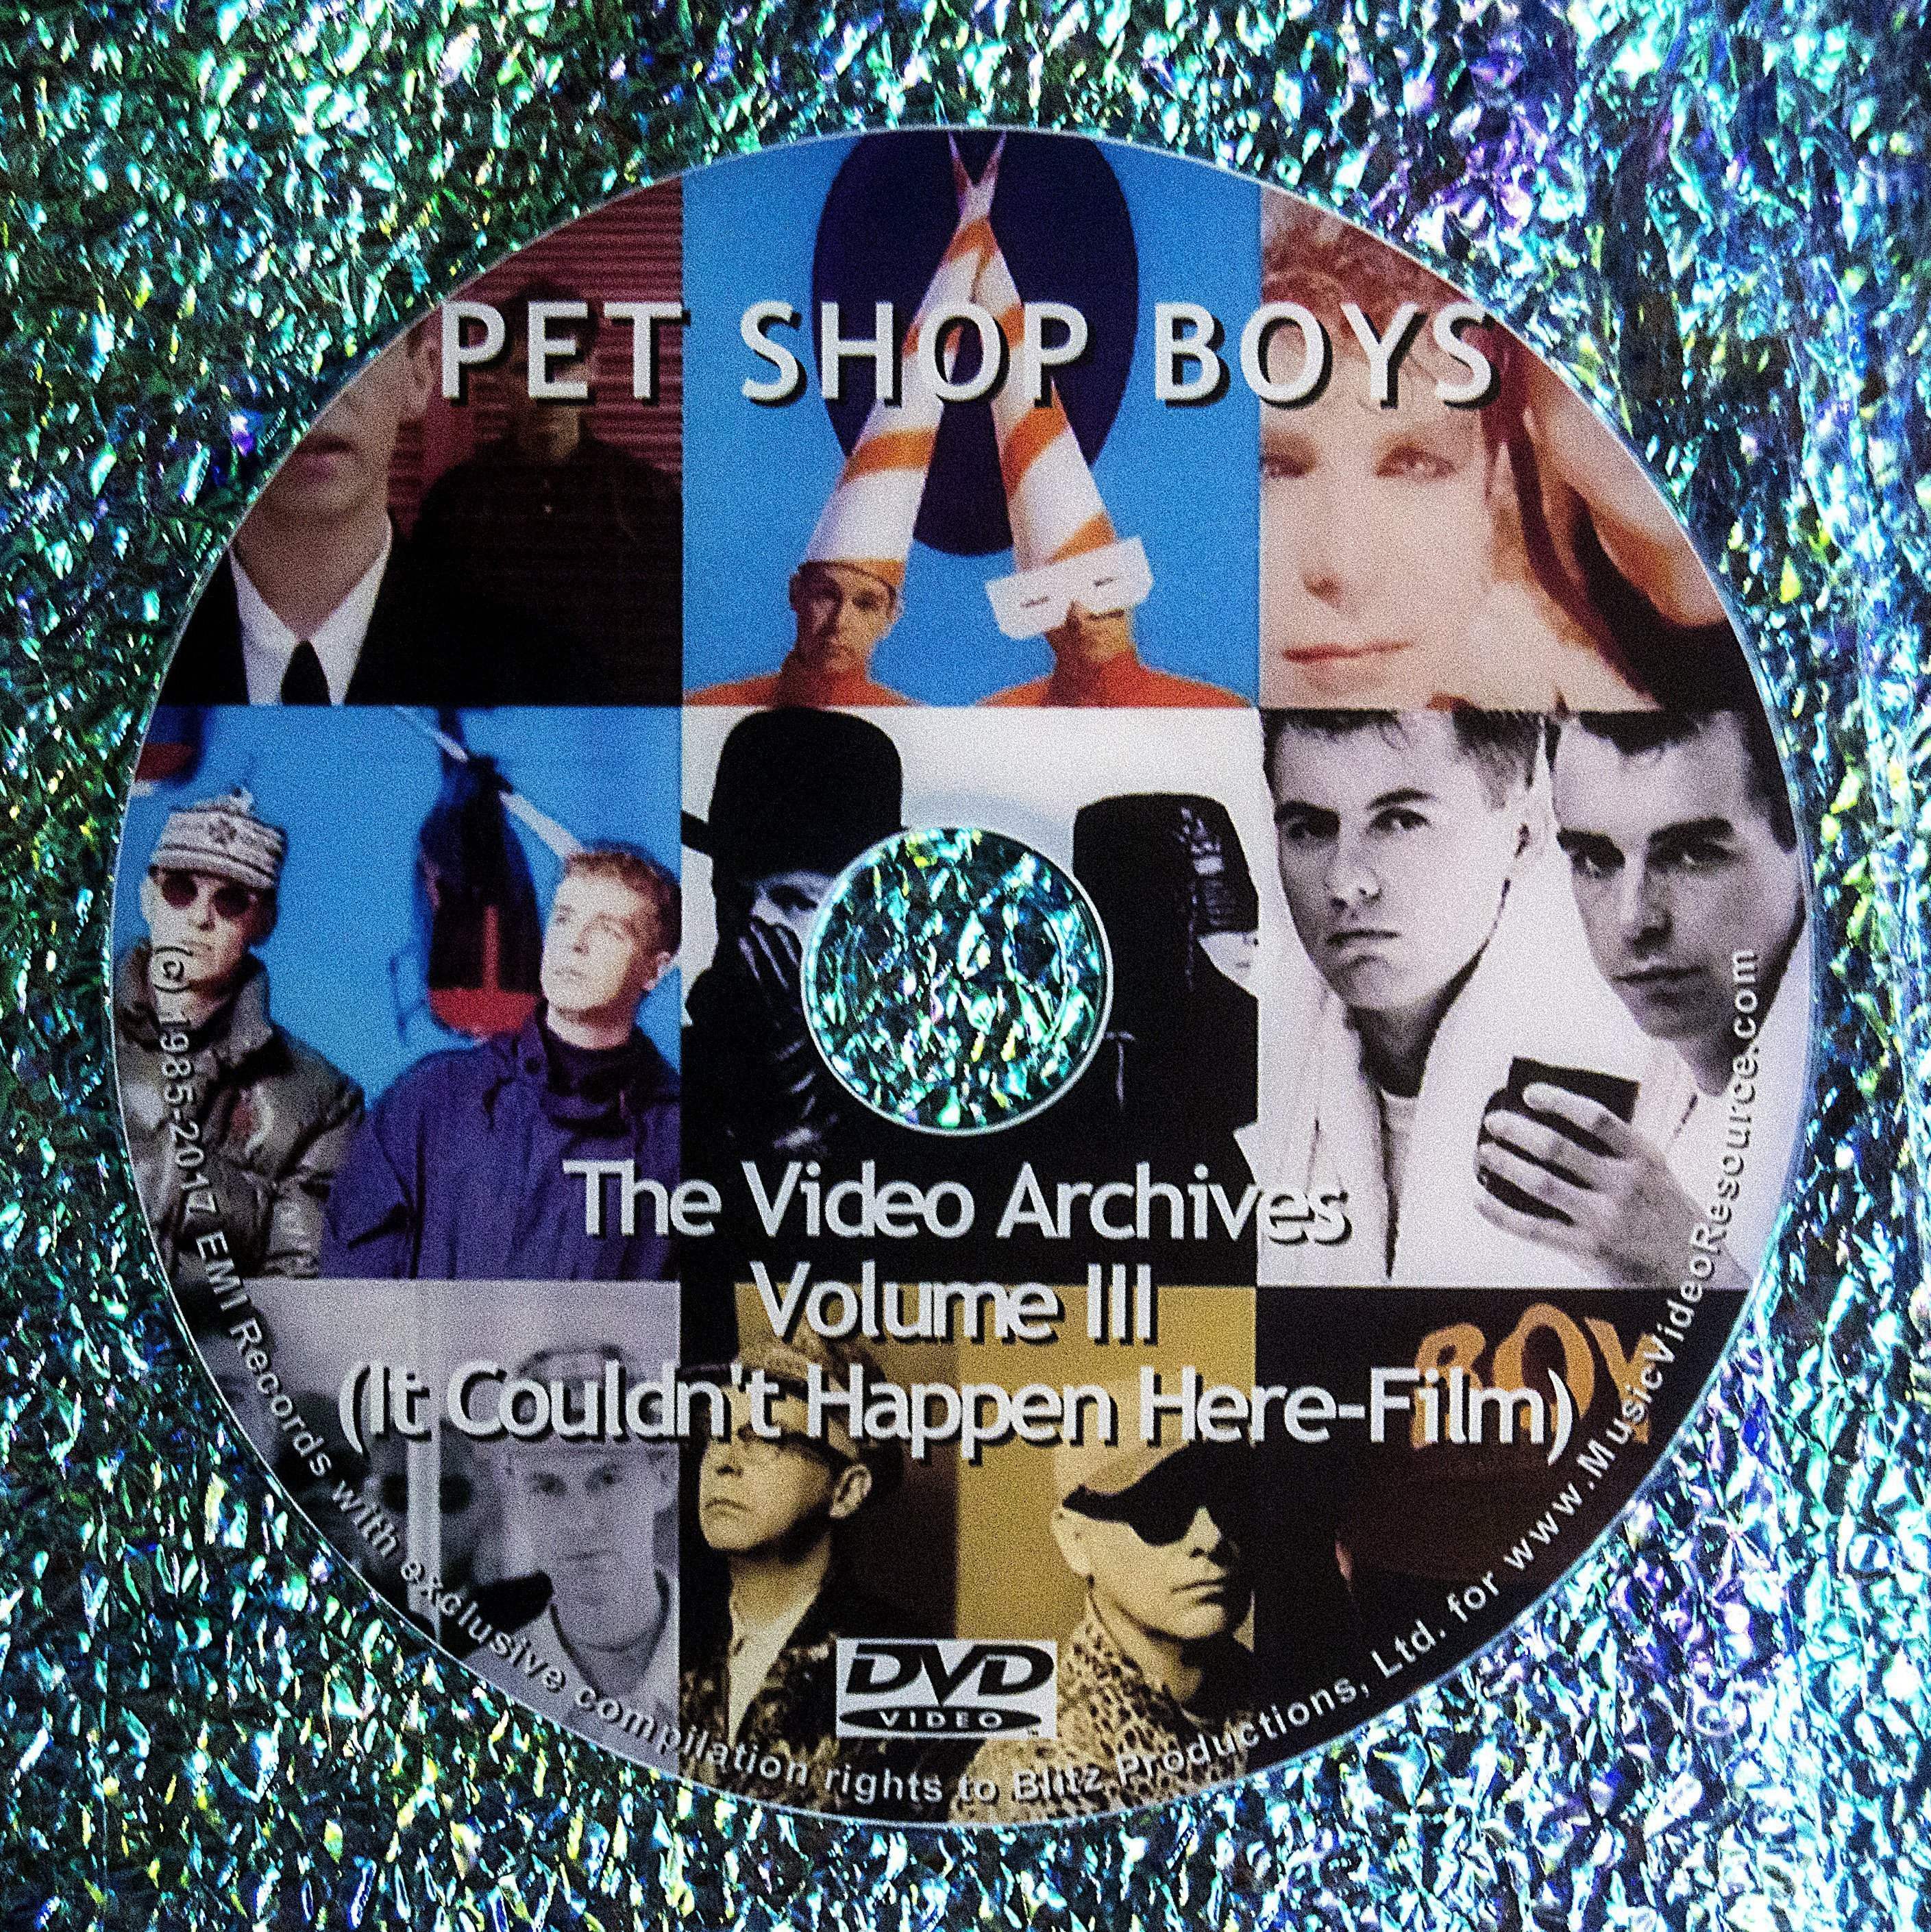 PET SHOP BOYS VIDEO ARCHIVES 2011 VOLUME III (Pet Shop Boys It Couldn't Happen Here 1988 DVD (Available in Region 1 or 2)